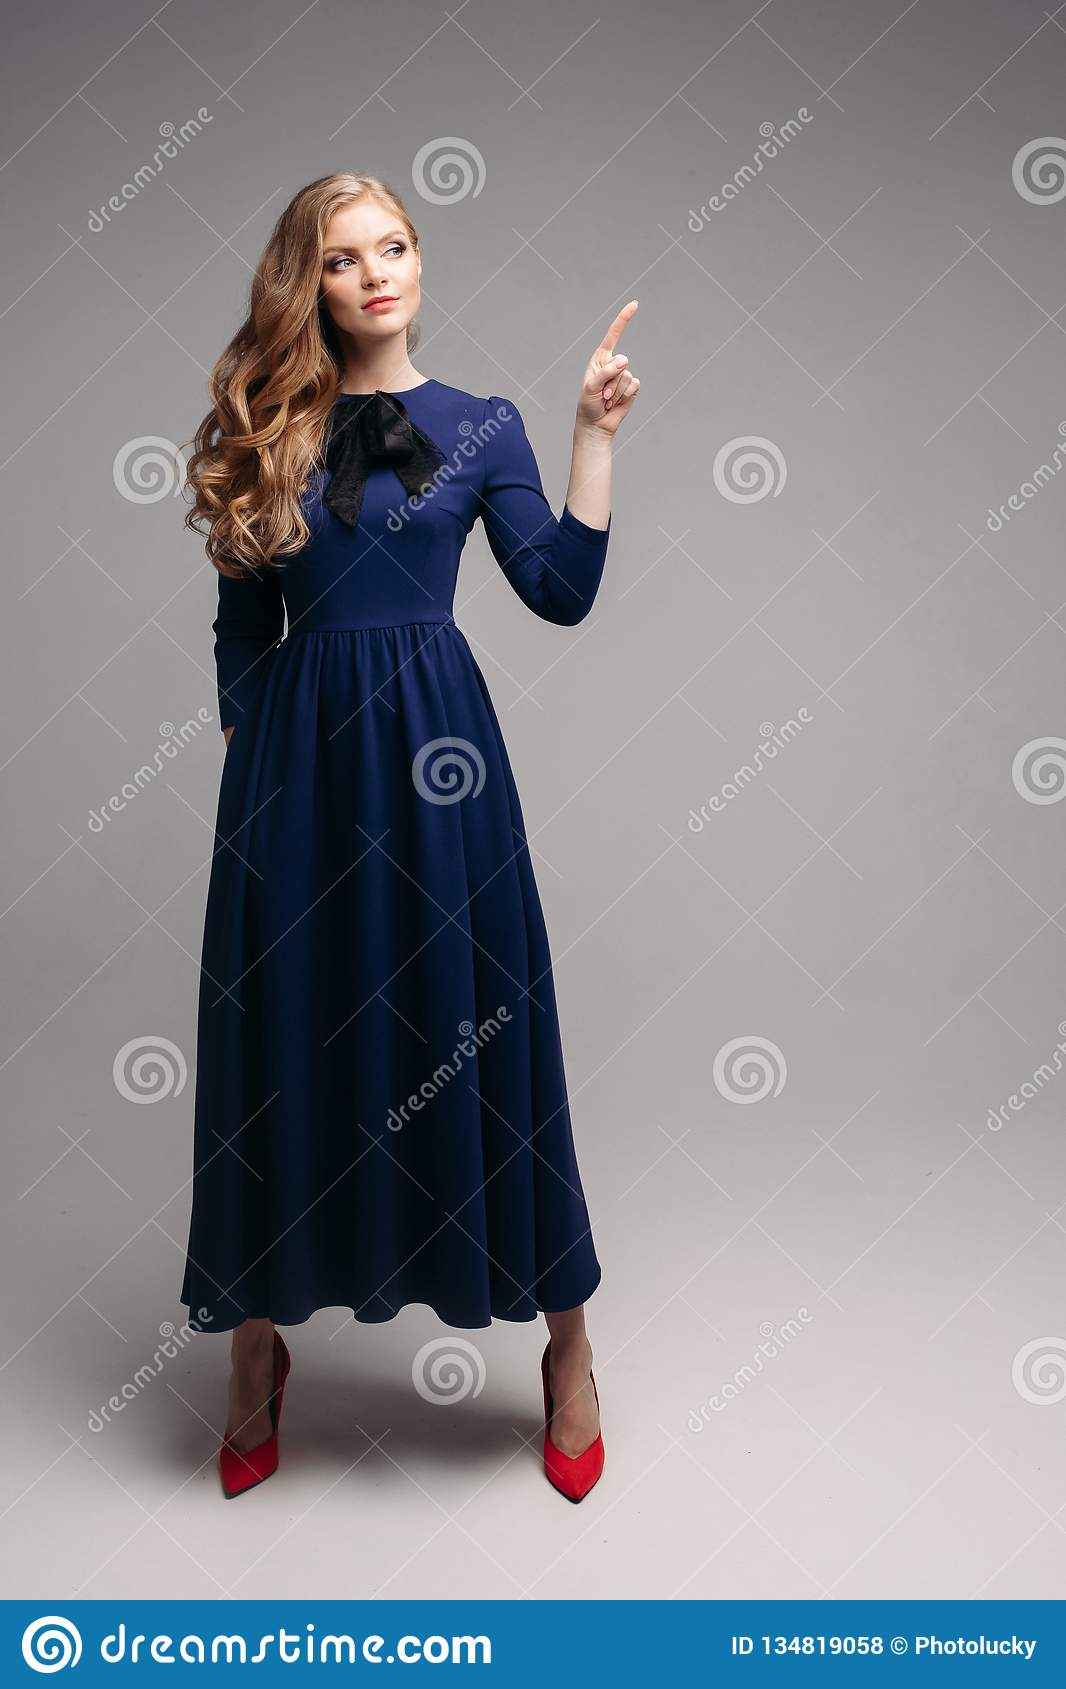 f19b9d5b2ff Studio portrait of attractive woman with long wavy hair in tail wearing  dress and black high heels over white background. Isolate.